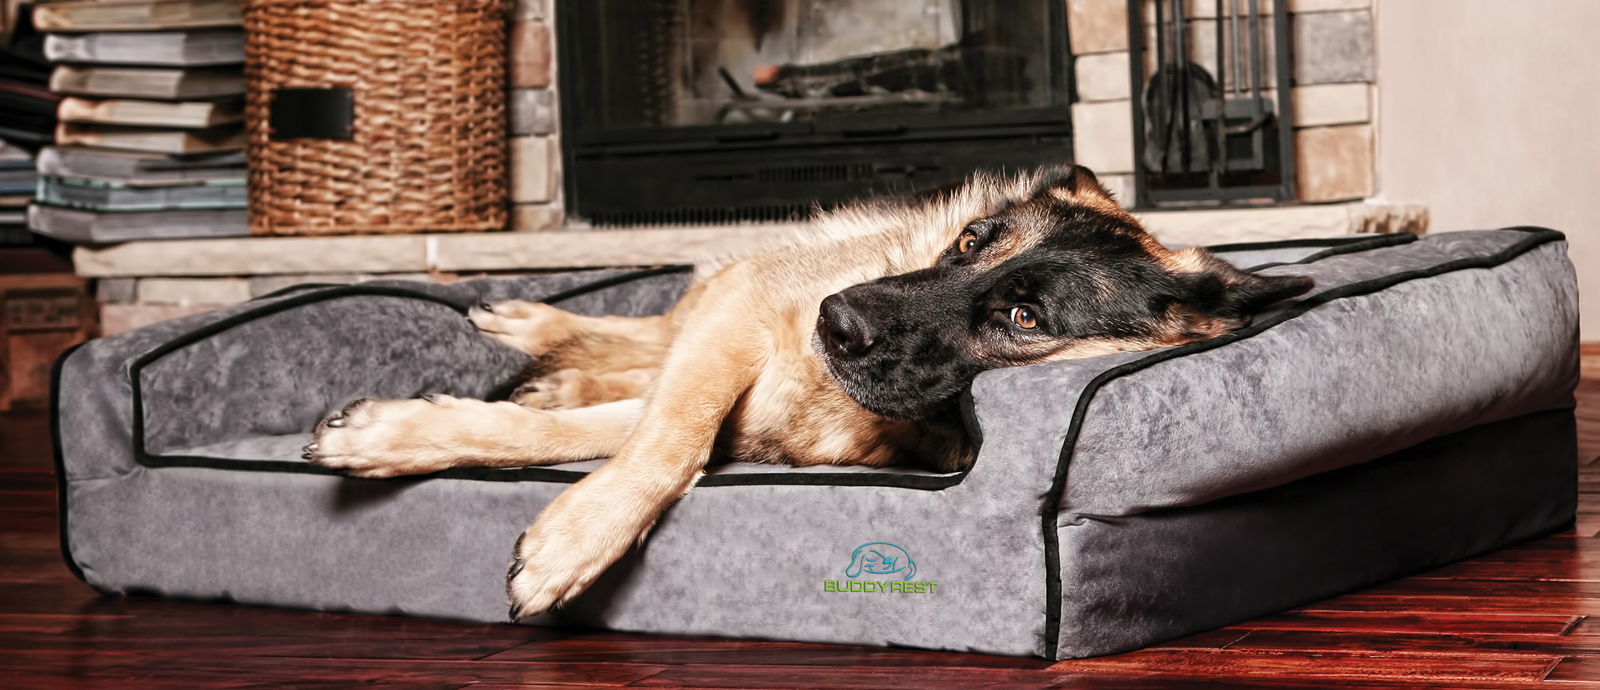 Working dog beds